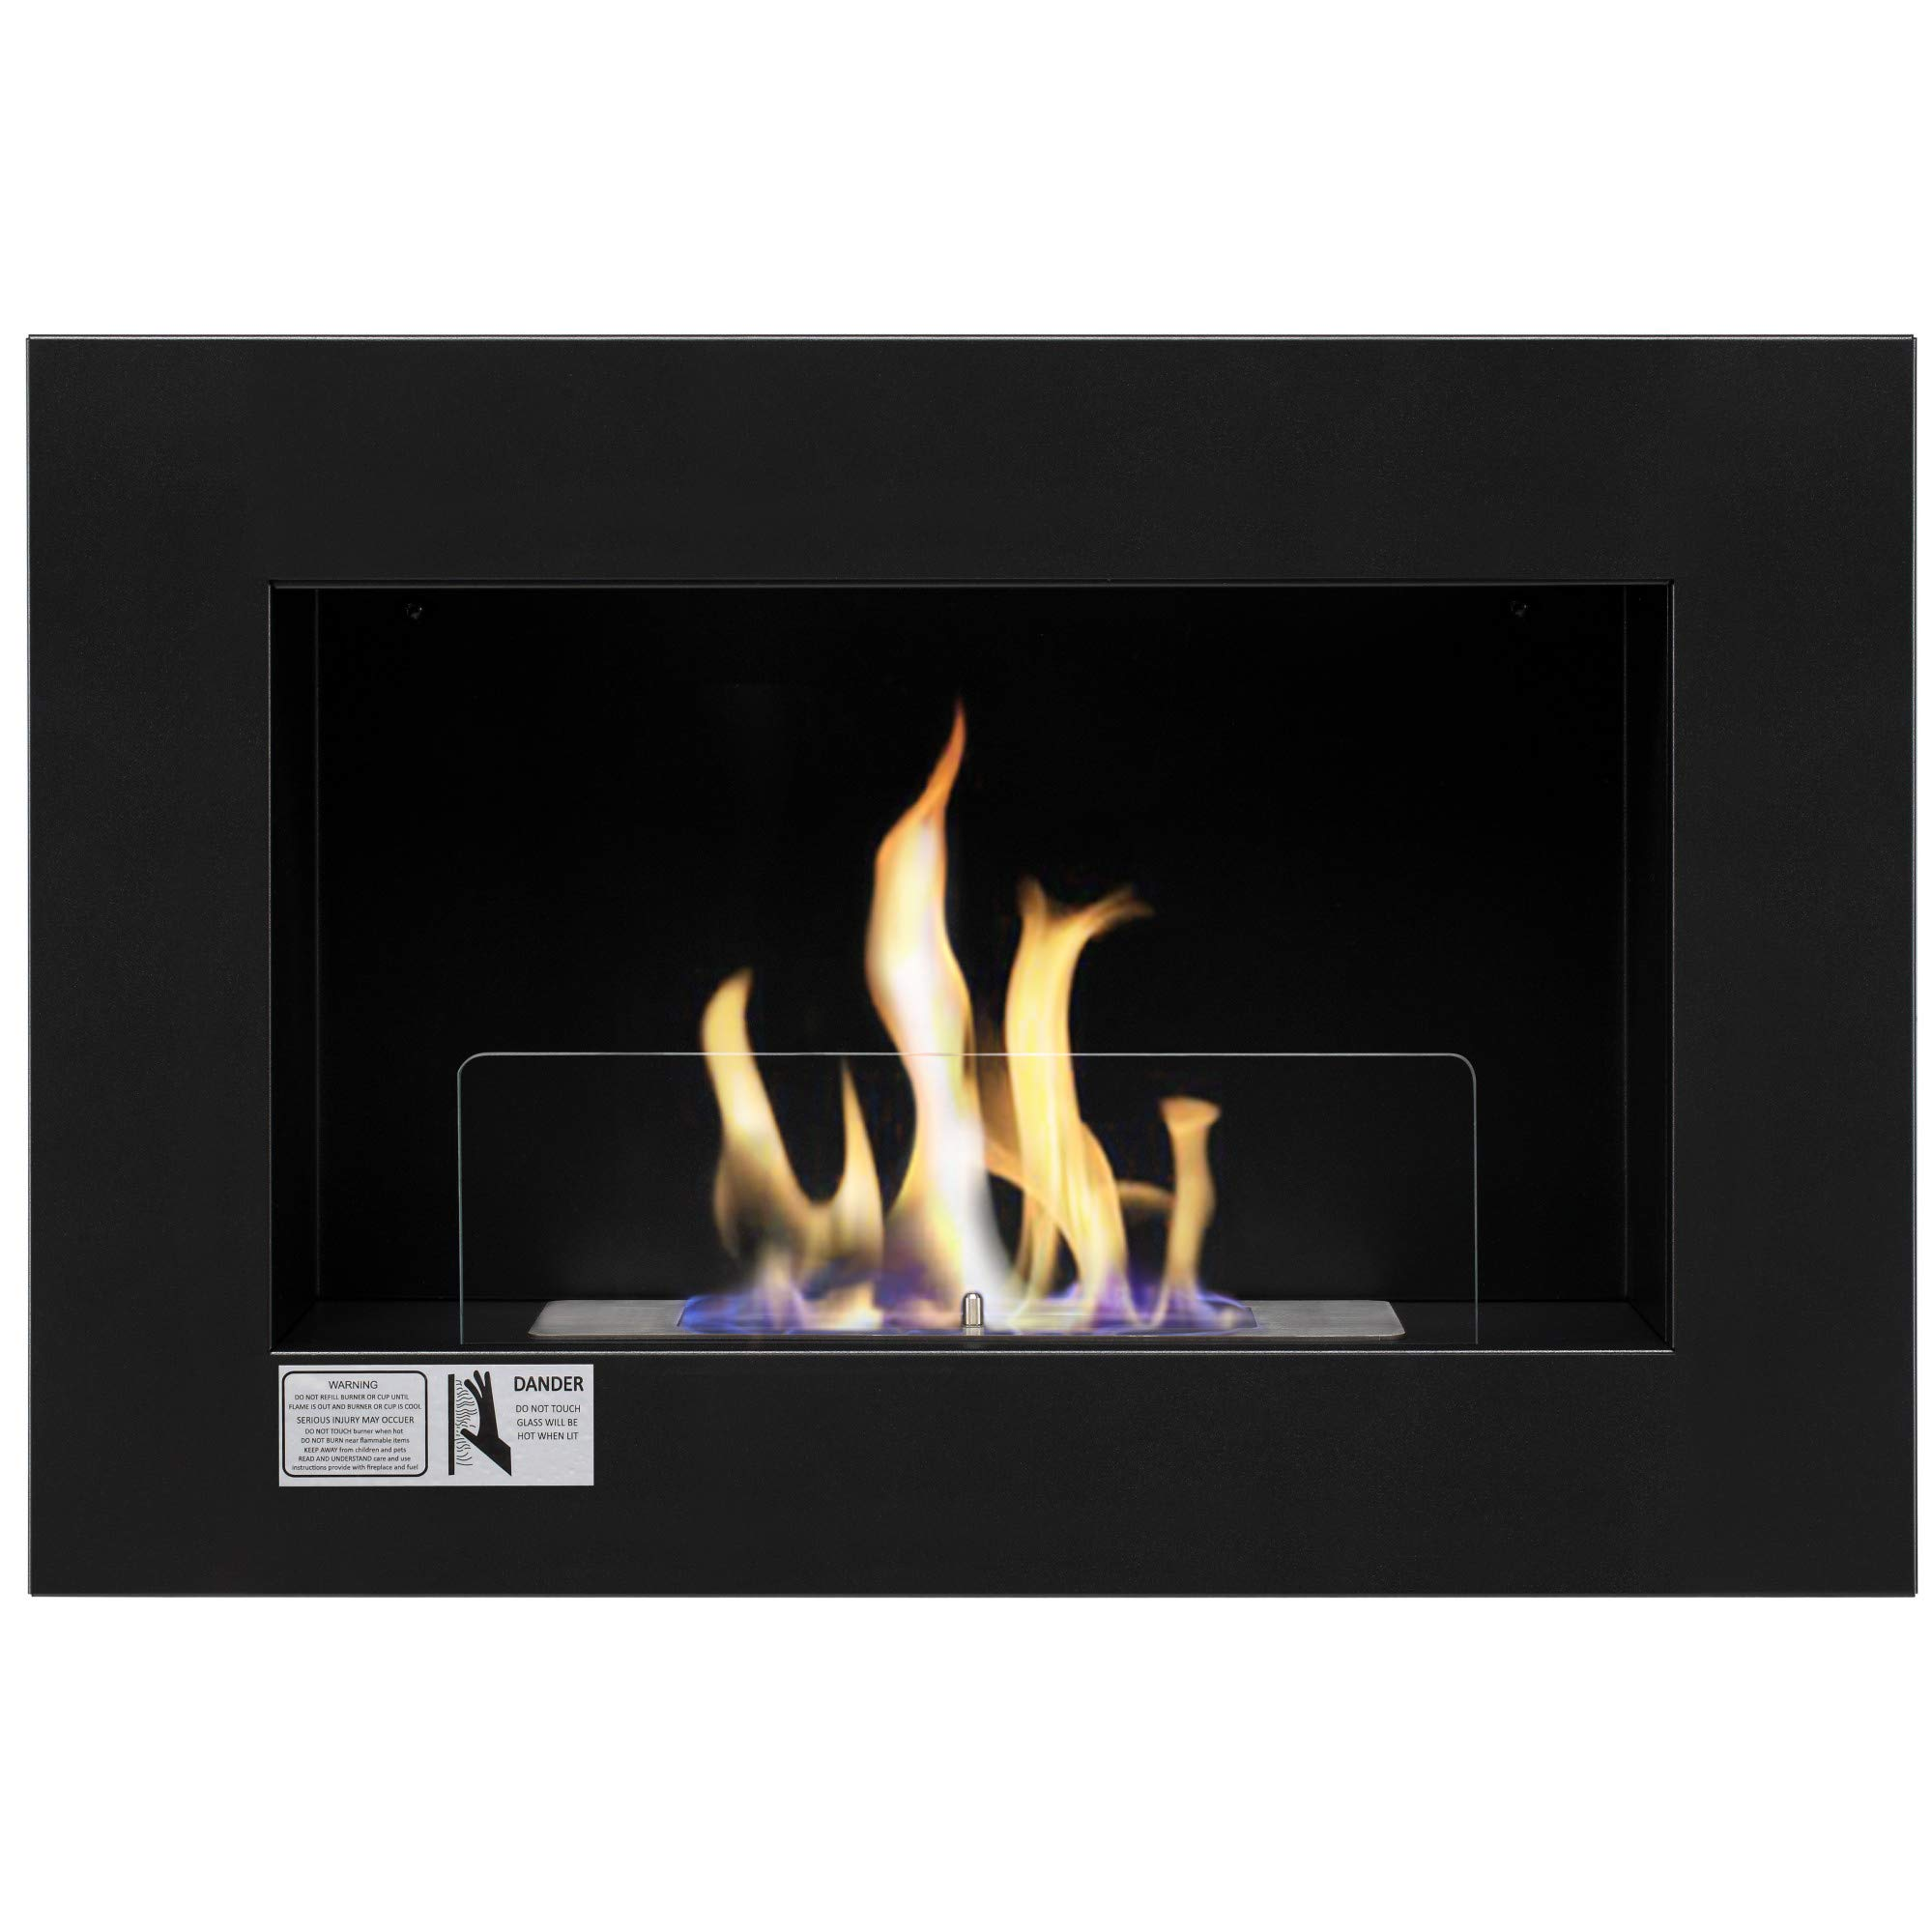 Xbeauty 27'' Ventless Built in Recessed Bio Ethanol Fireplace with Safety Glass,Indoor Wall Mounted Fireplace by Xbeauty